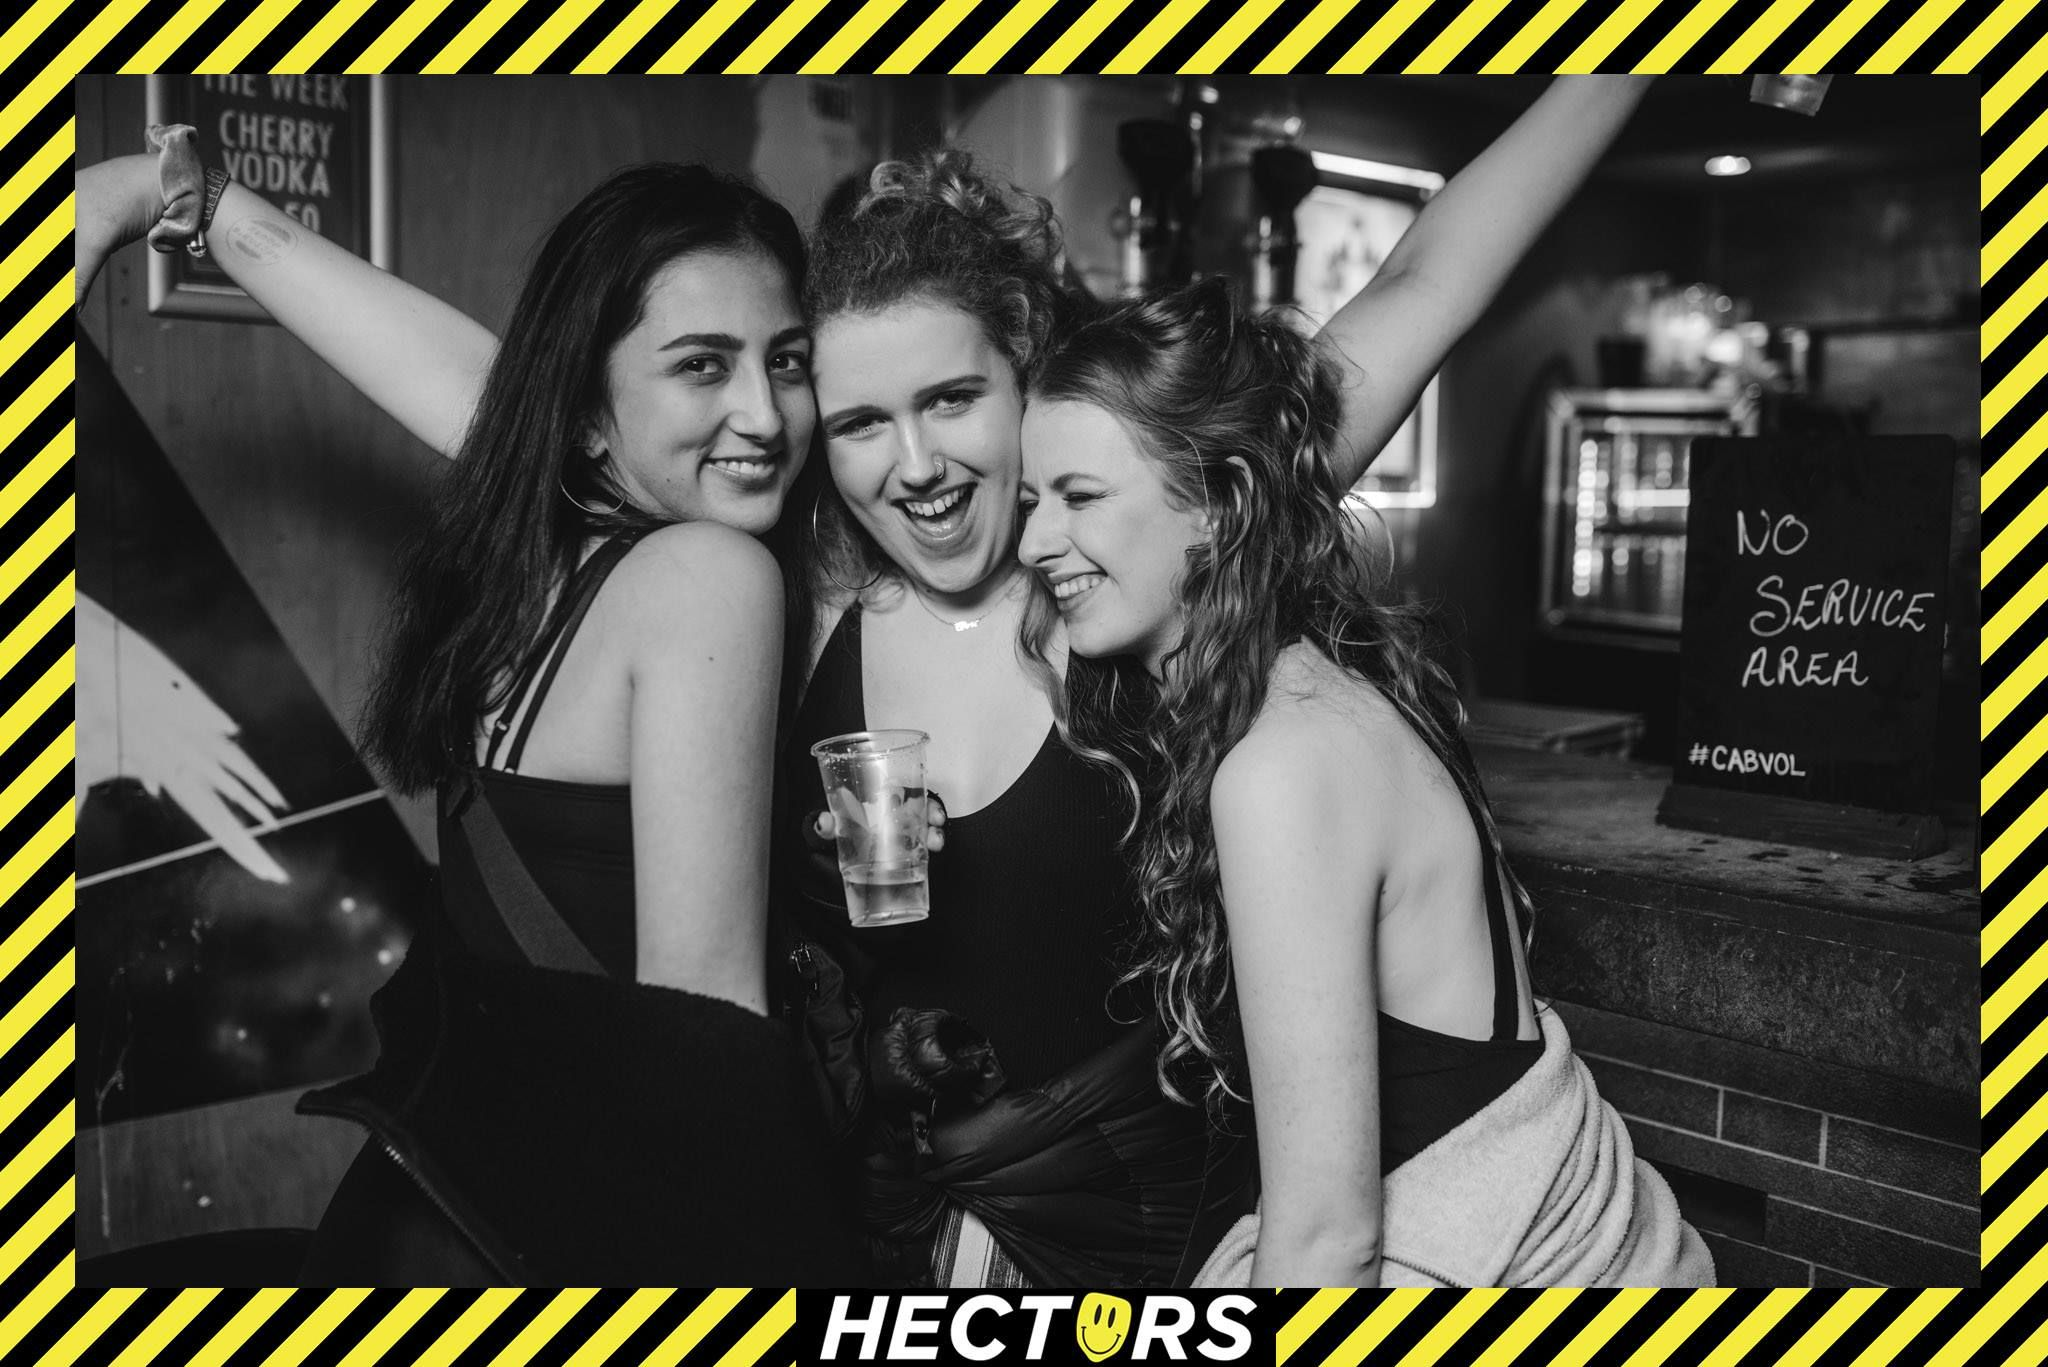 Image may contain: Night Club, Alcohol, Club, Beverage, Drink, Party, Advertisement, Poster, Person, Human